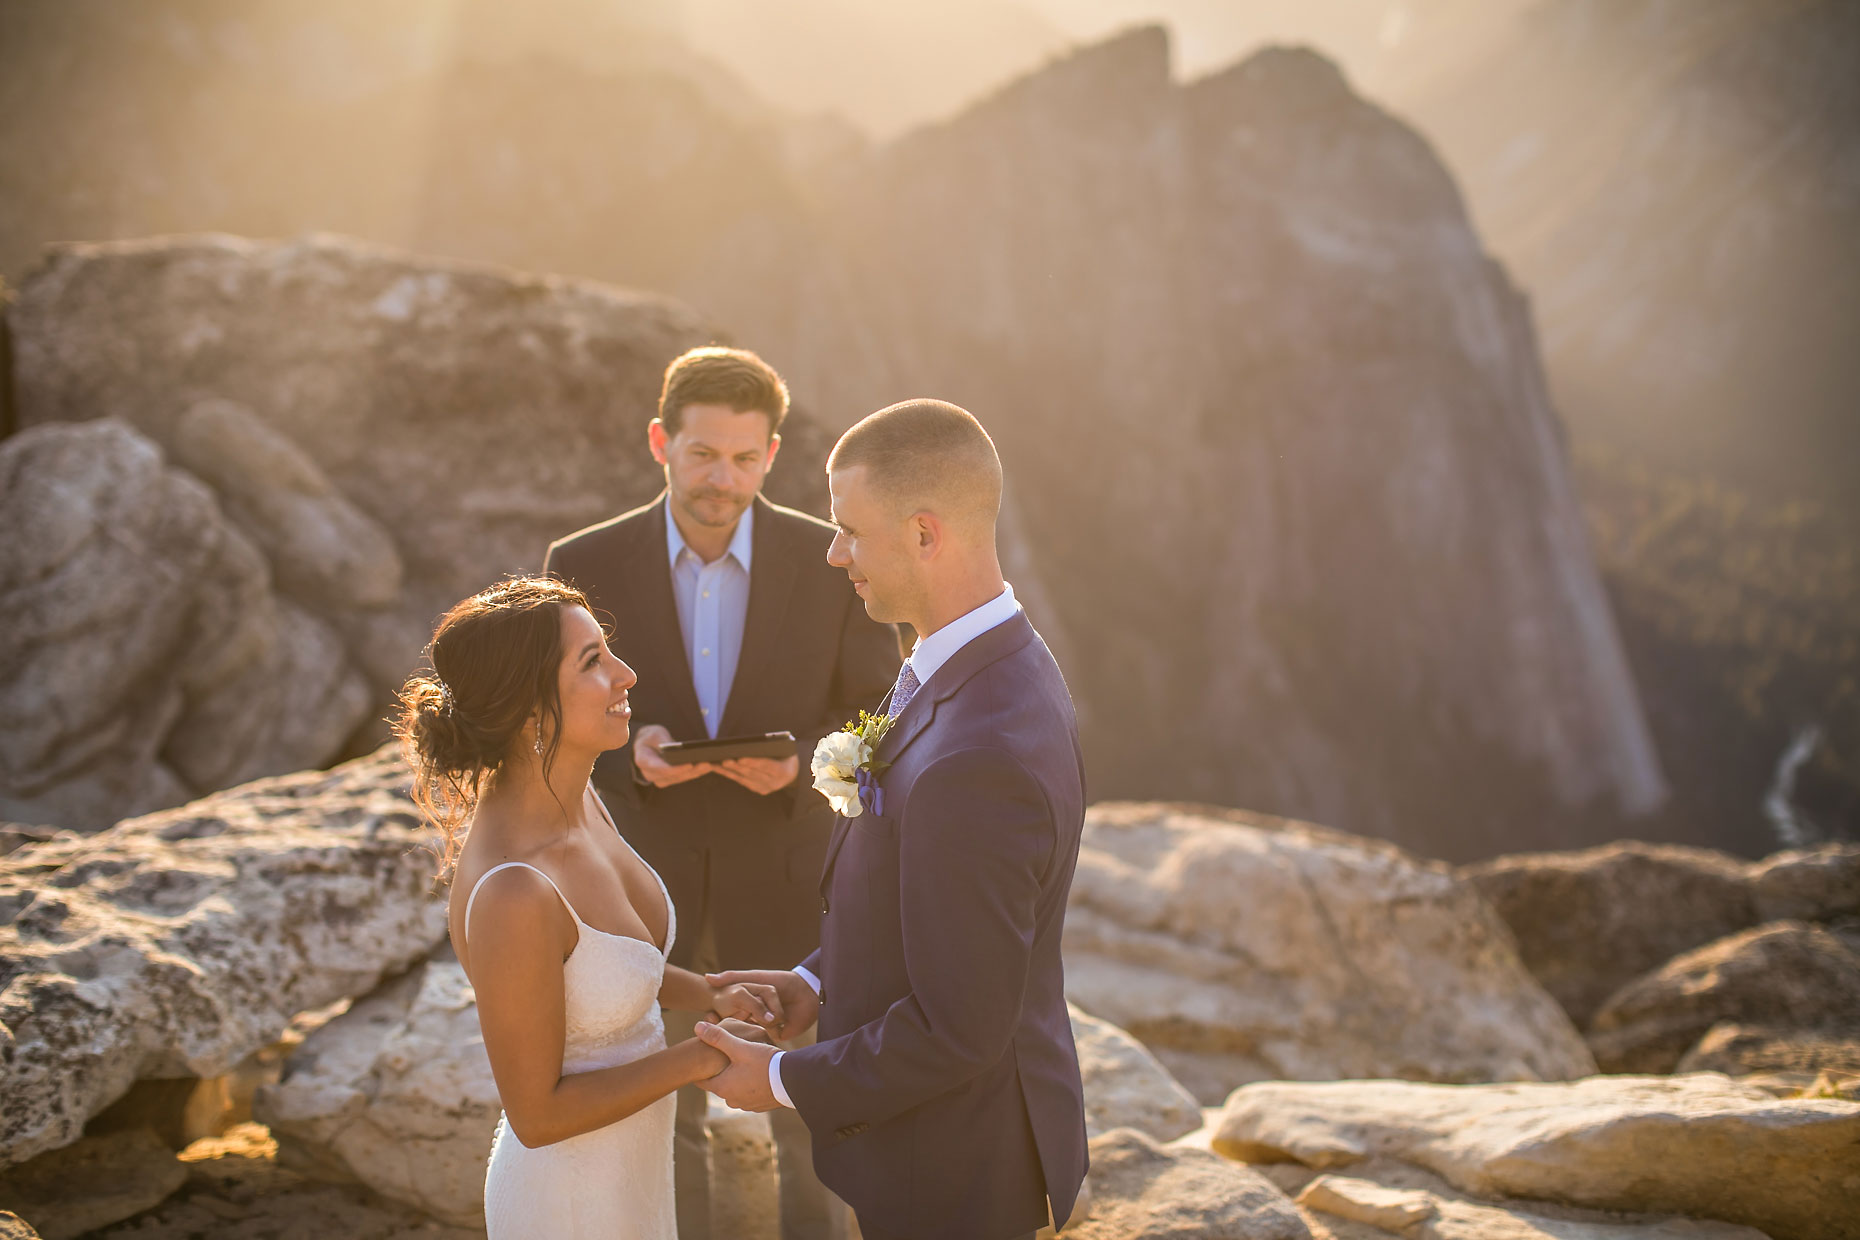 Adventure elopement at Taft Point in Yosemite.